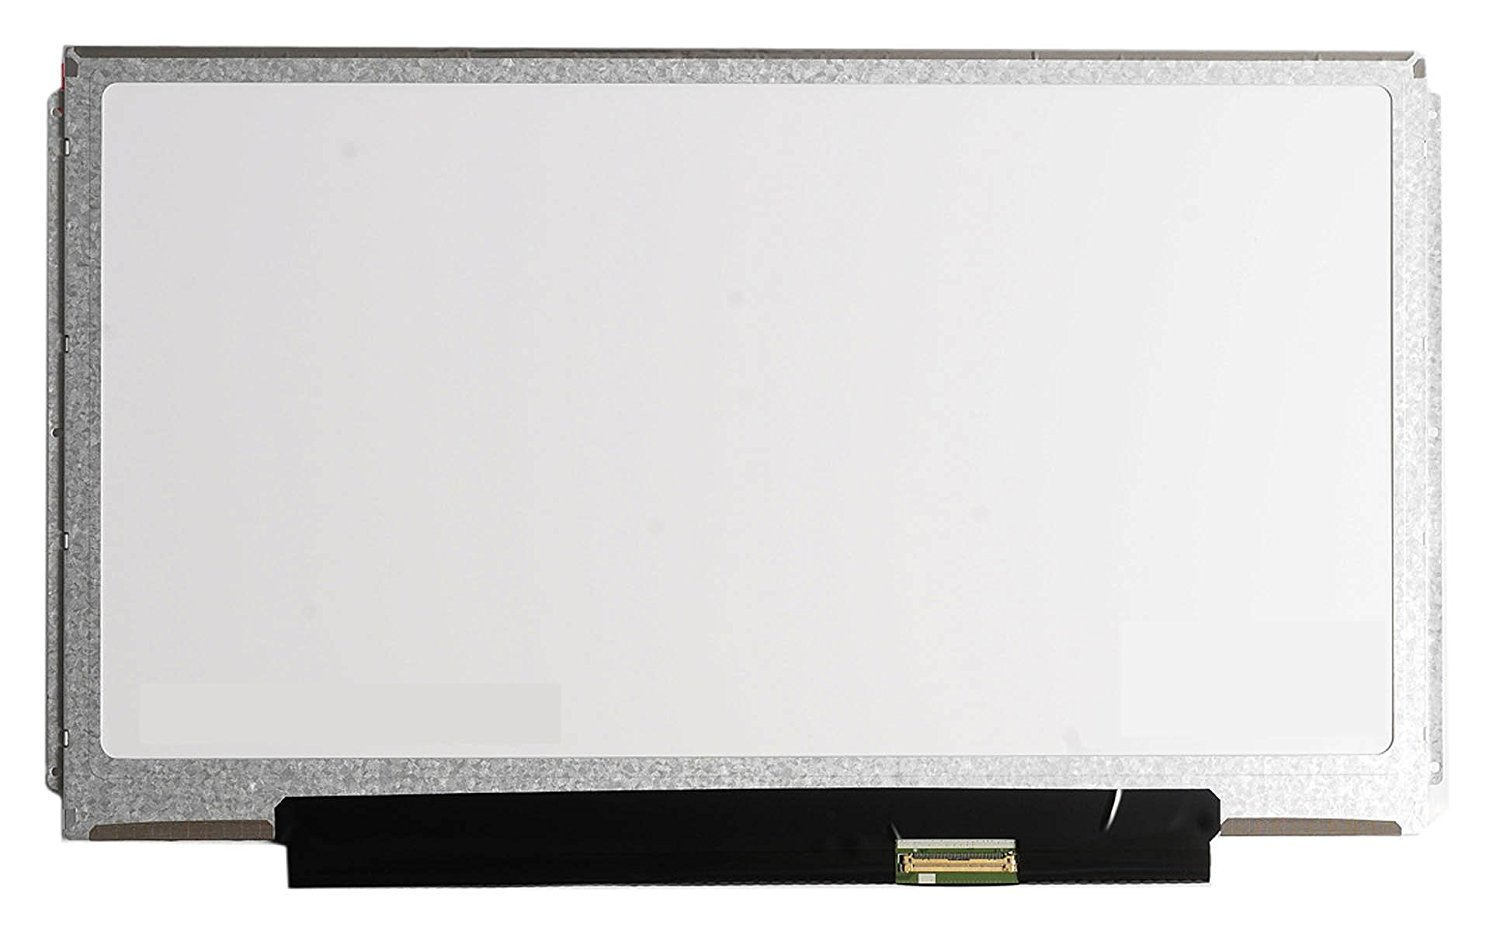 все цены на Laptop LCD LED Display Screen For DELL for Vostro V13 V130 3300 3350 B133XW01 v.0 V.1 v.2 v.4 13.3 40Pin LVDS 0XX31G 1366x768 онлайн